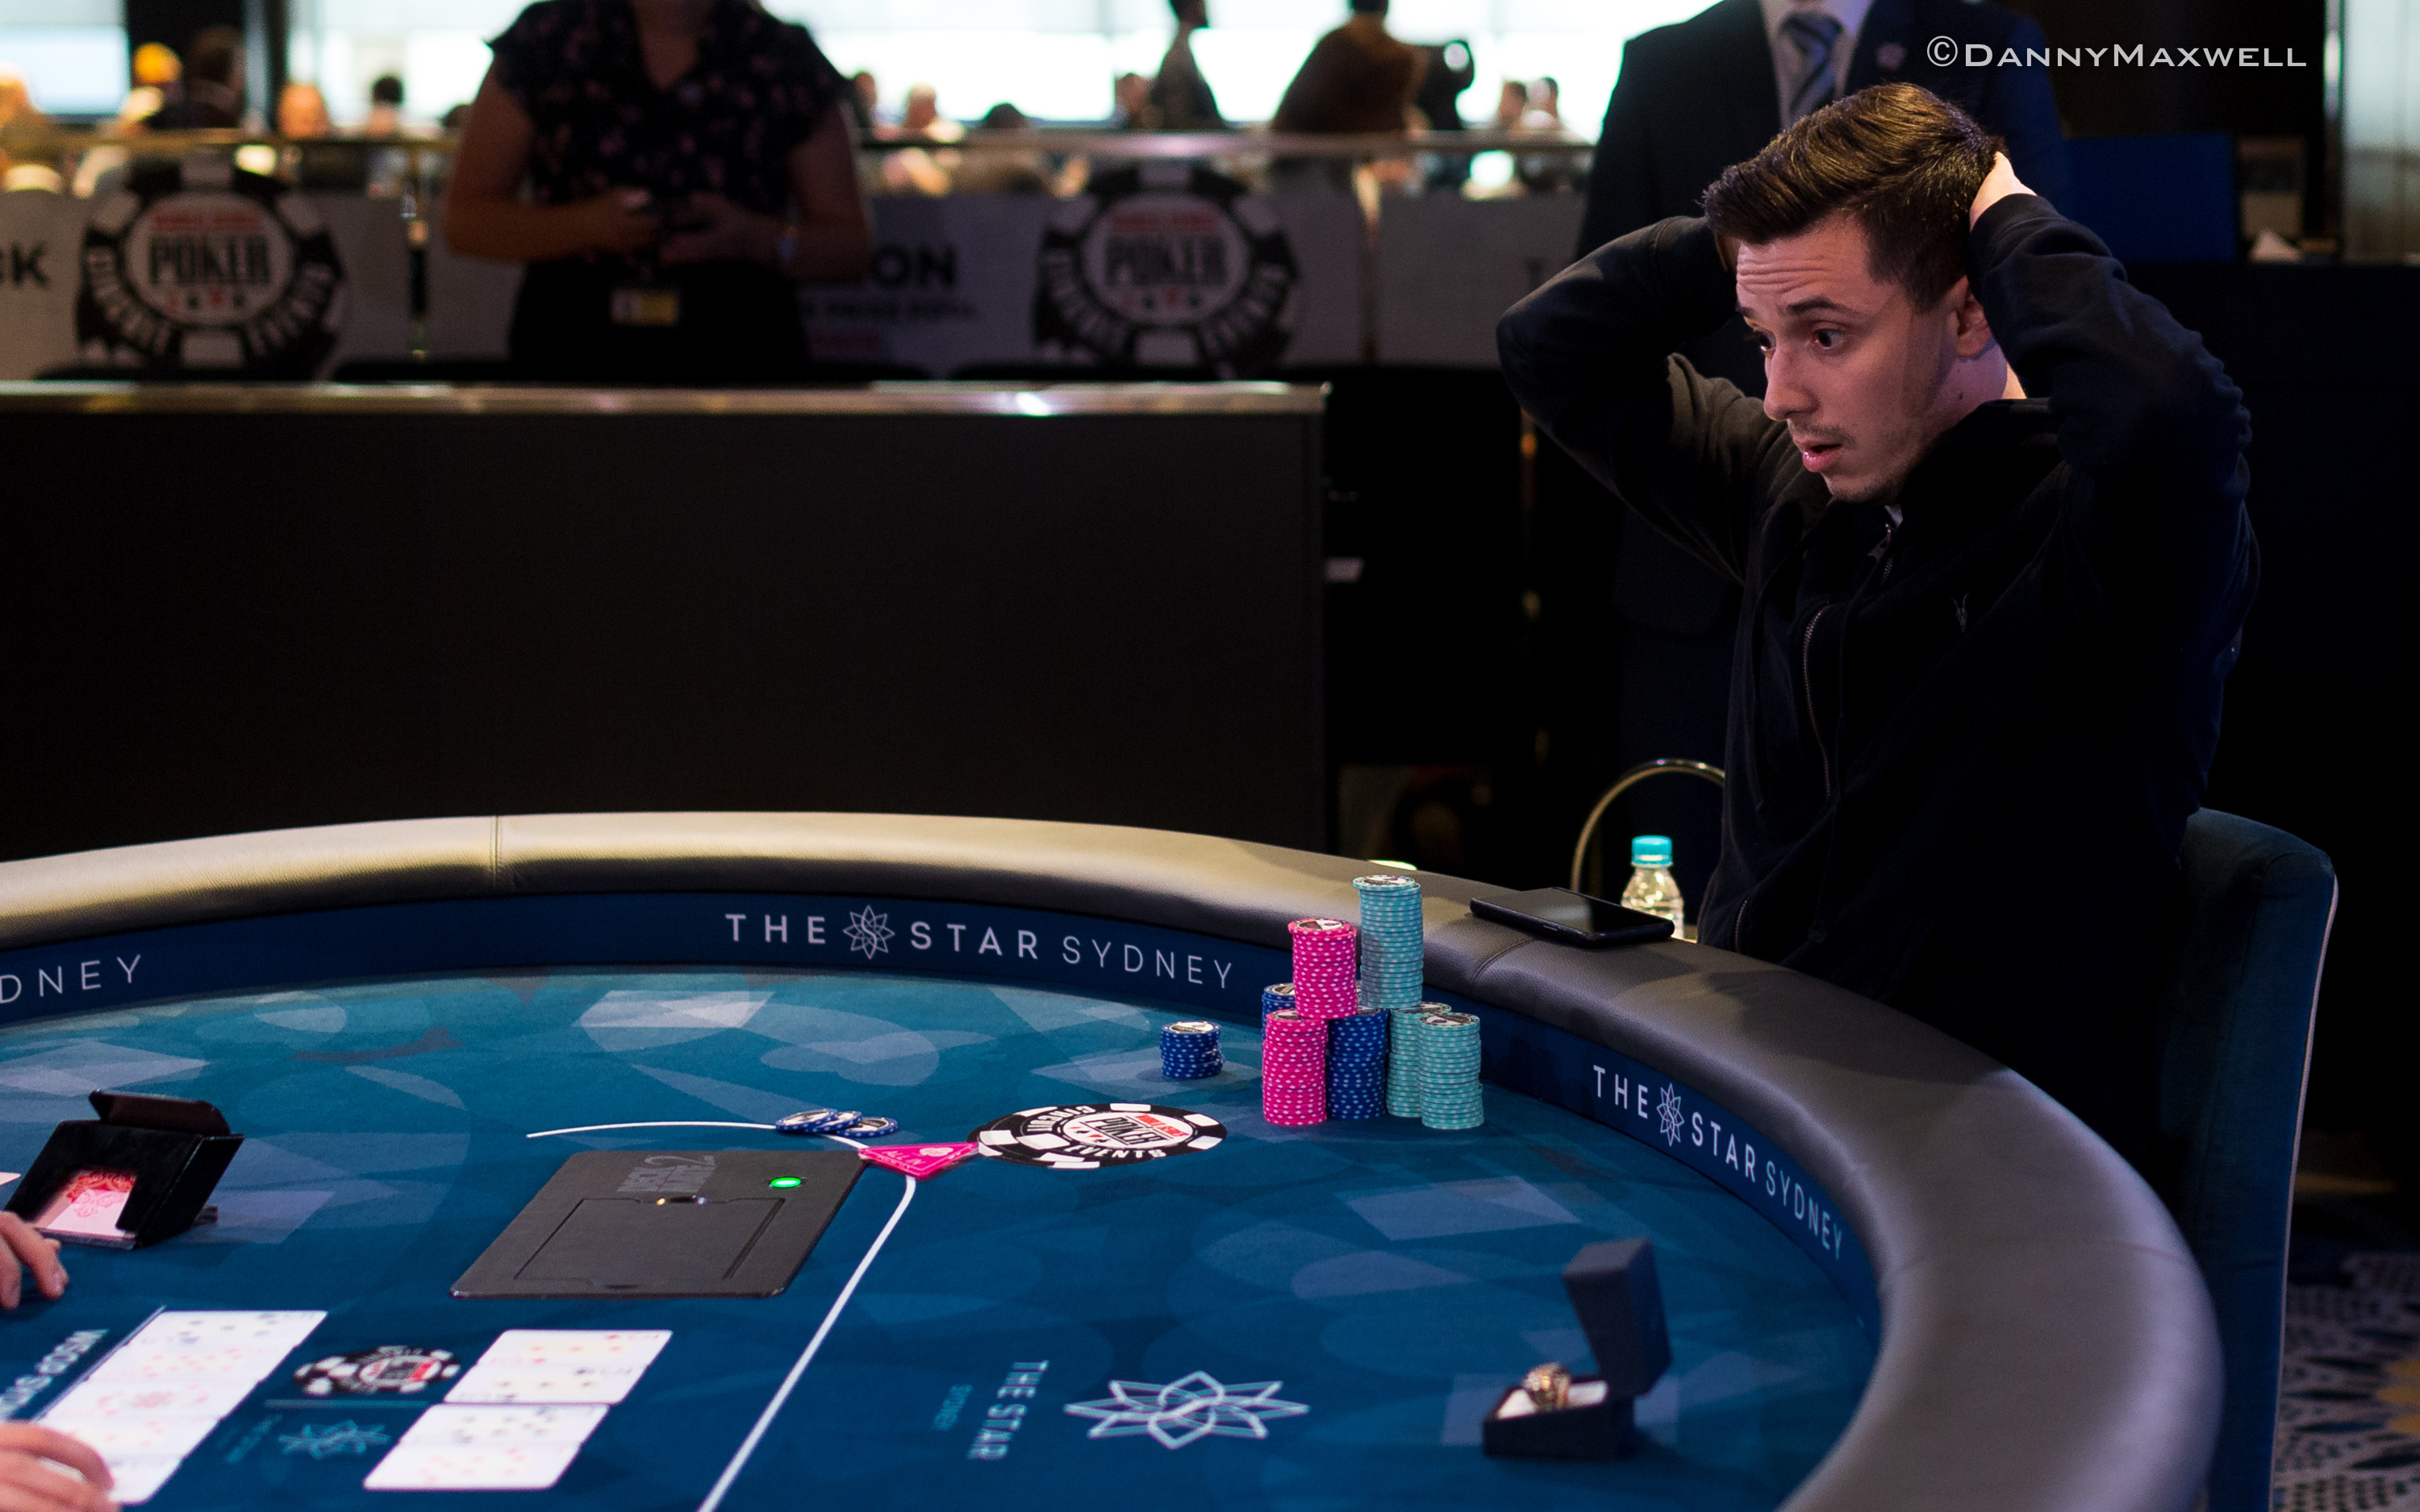 Alex Lynskey stunned on the final hand